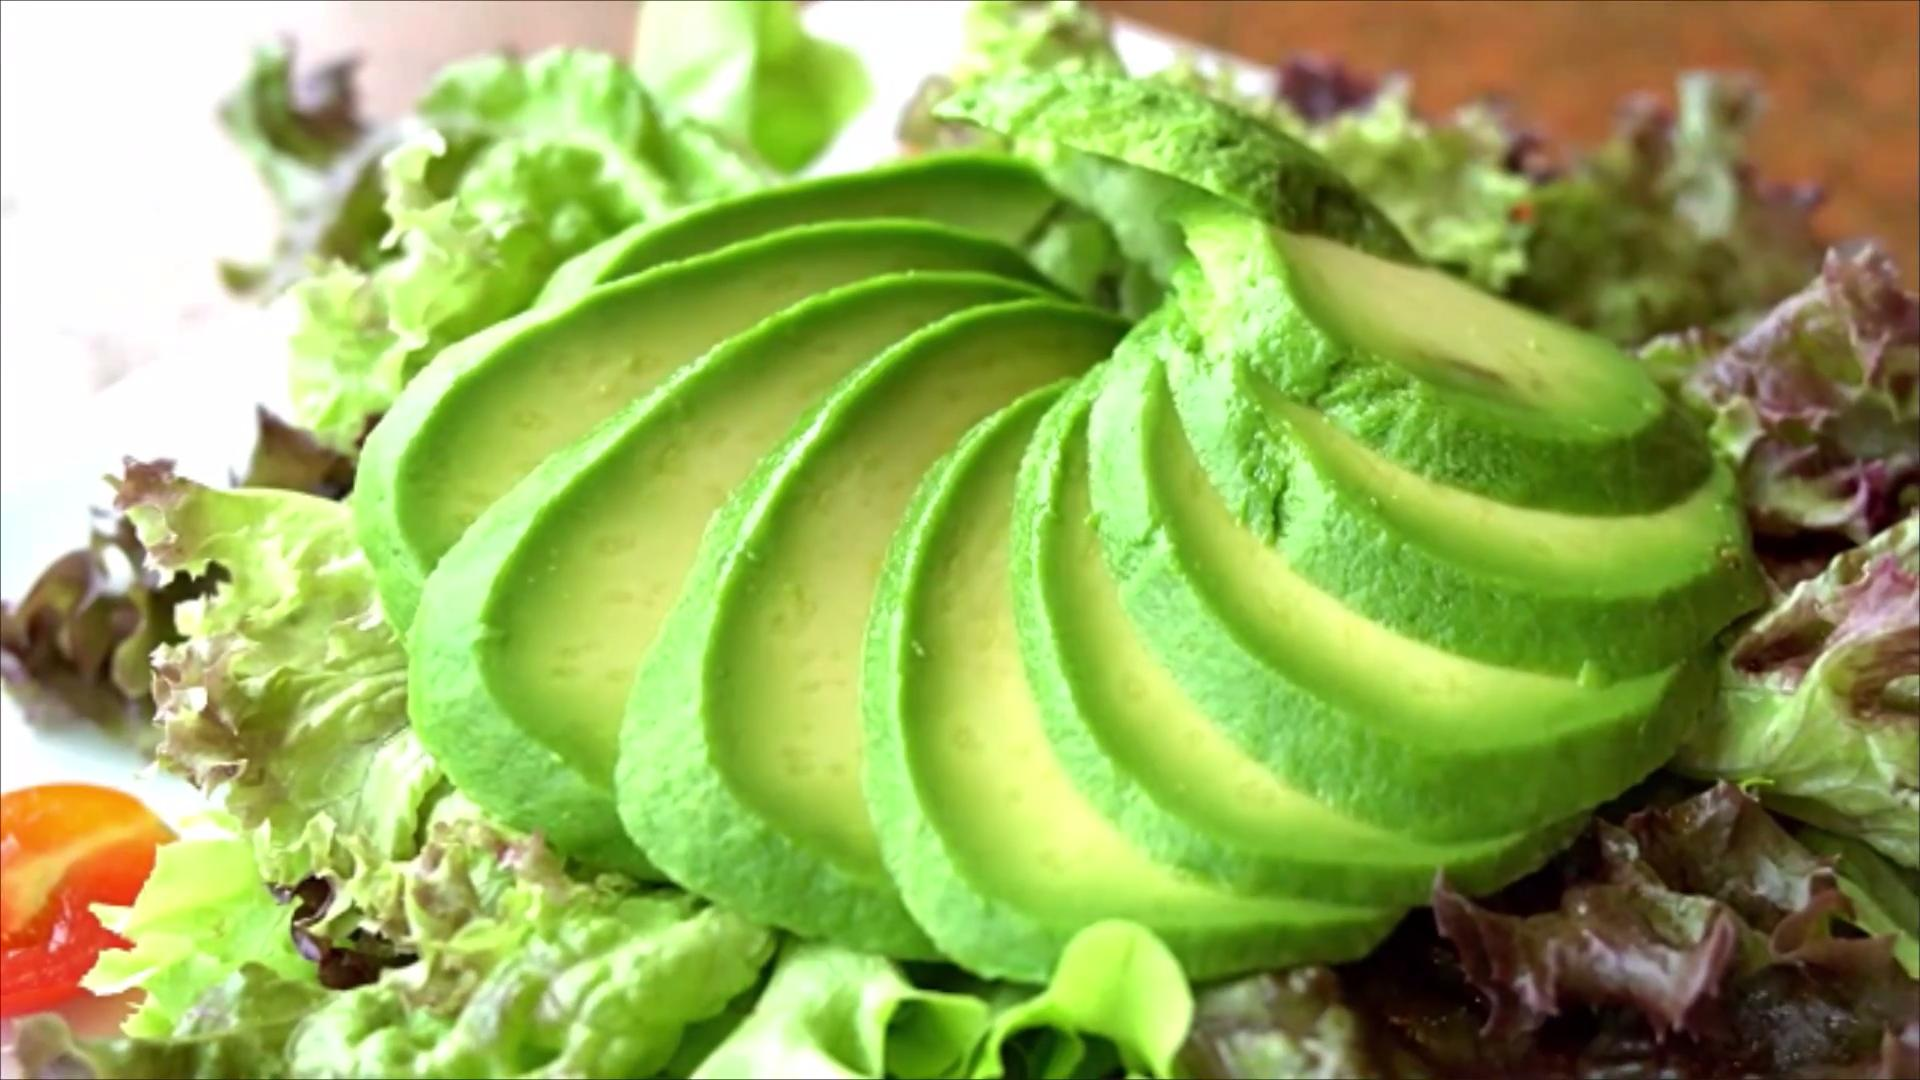 5 Ways to Use Avocados—Besides on Toast